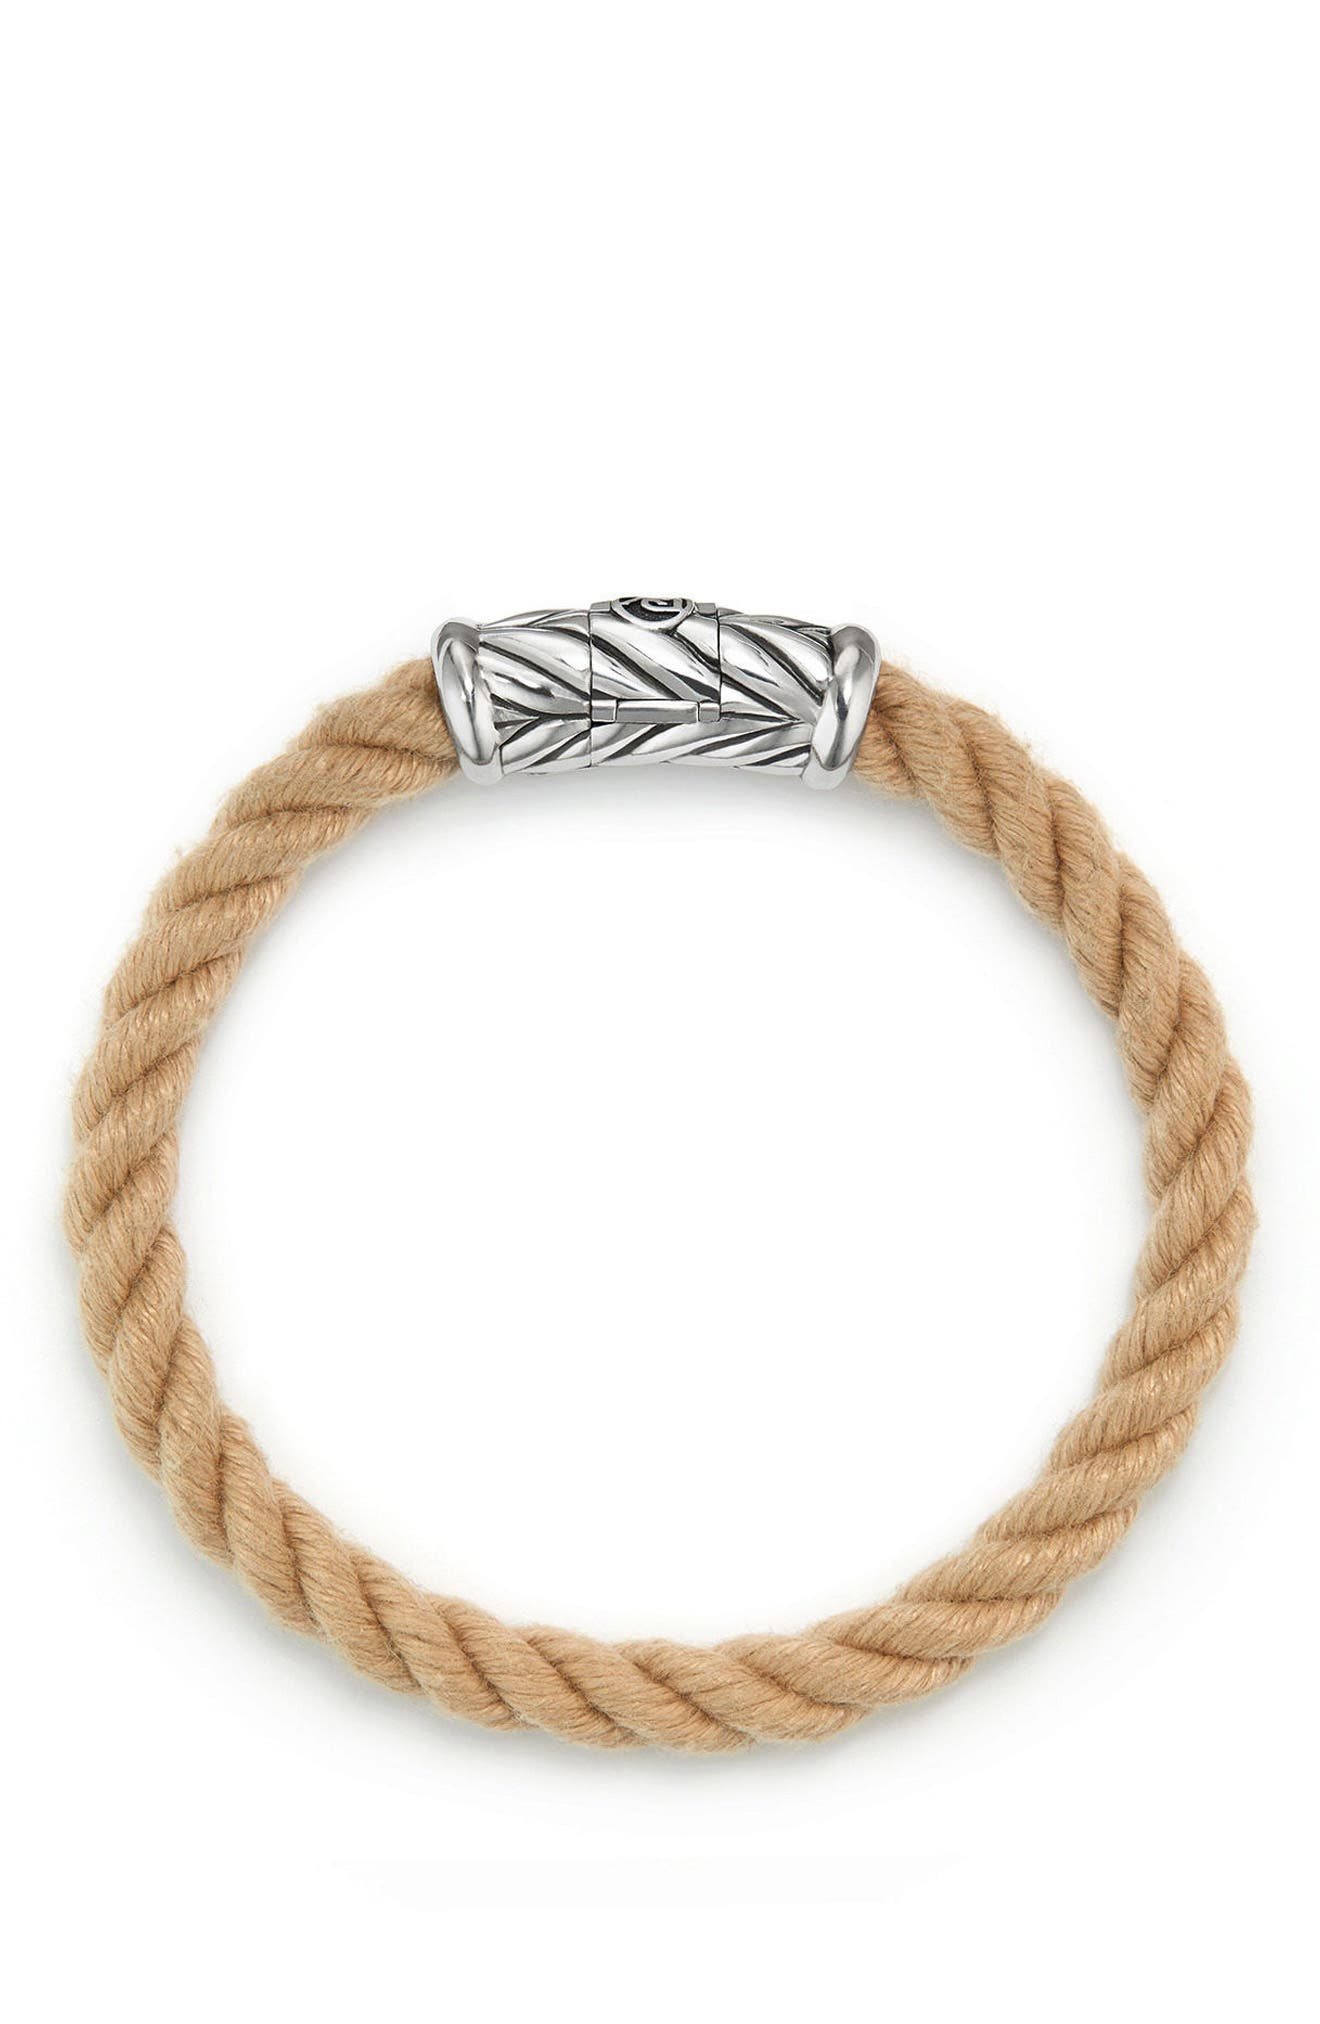 Alternate Image 1 Selected - David Yurman Maritime Rope Bracelet